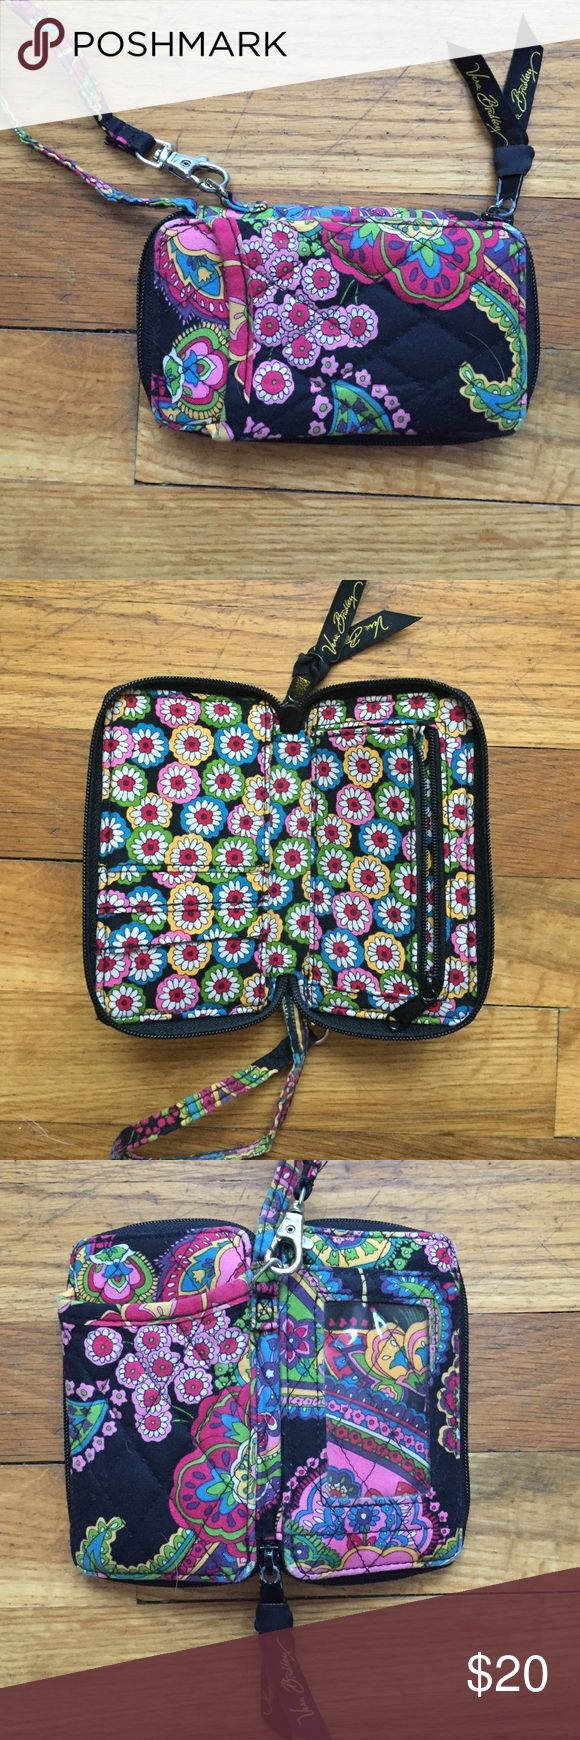 Vera Bradley Wristlet Great condition Vera Bradley wristlet. Iphone 6 fits in front pocket. Wallet pockets on inside. Vera Bradley Bags Clutches & Wristlets